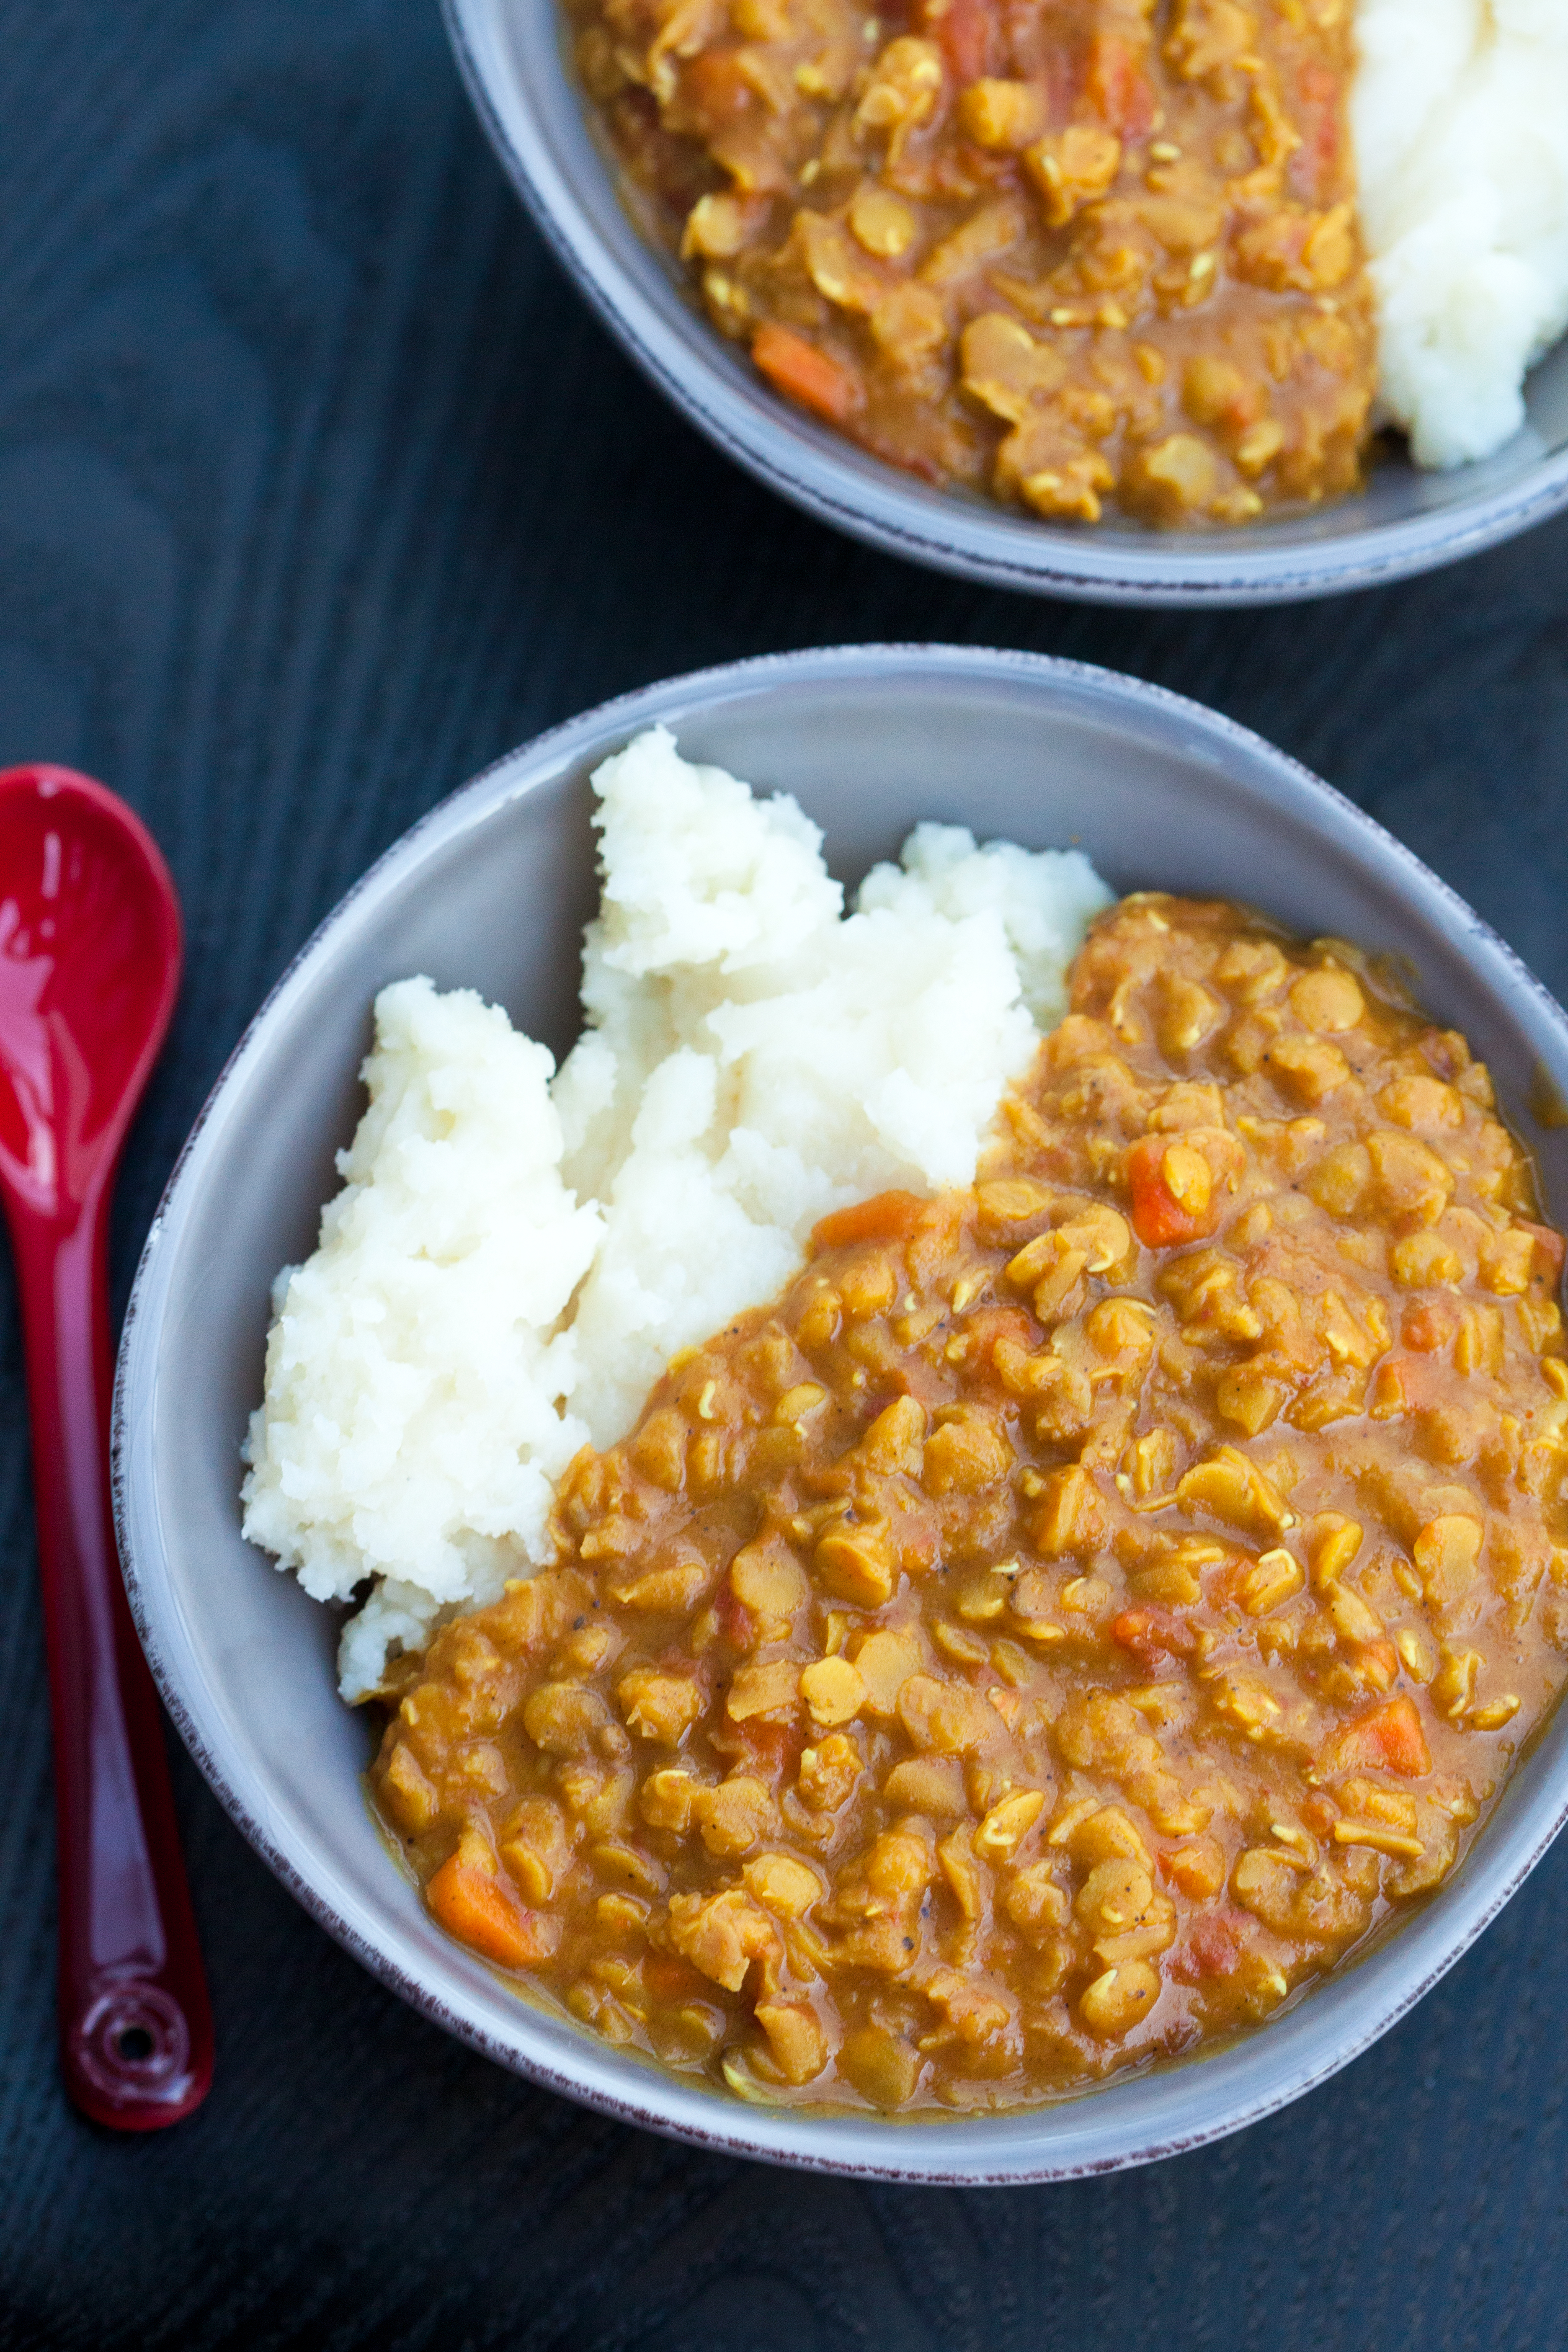 A super easy, and super tasty curried lentil dish that pairs perfectly with everything from mashed potatoes to flatbread | spachethespatula.com #recipe #vegan